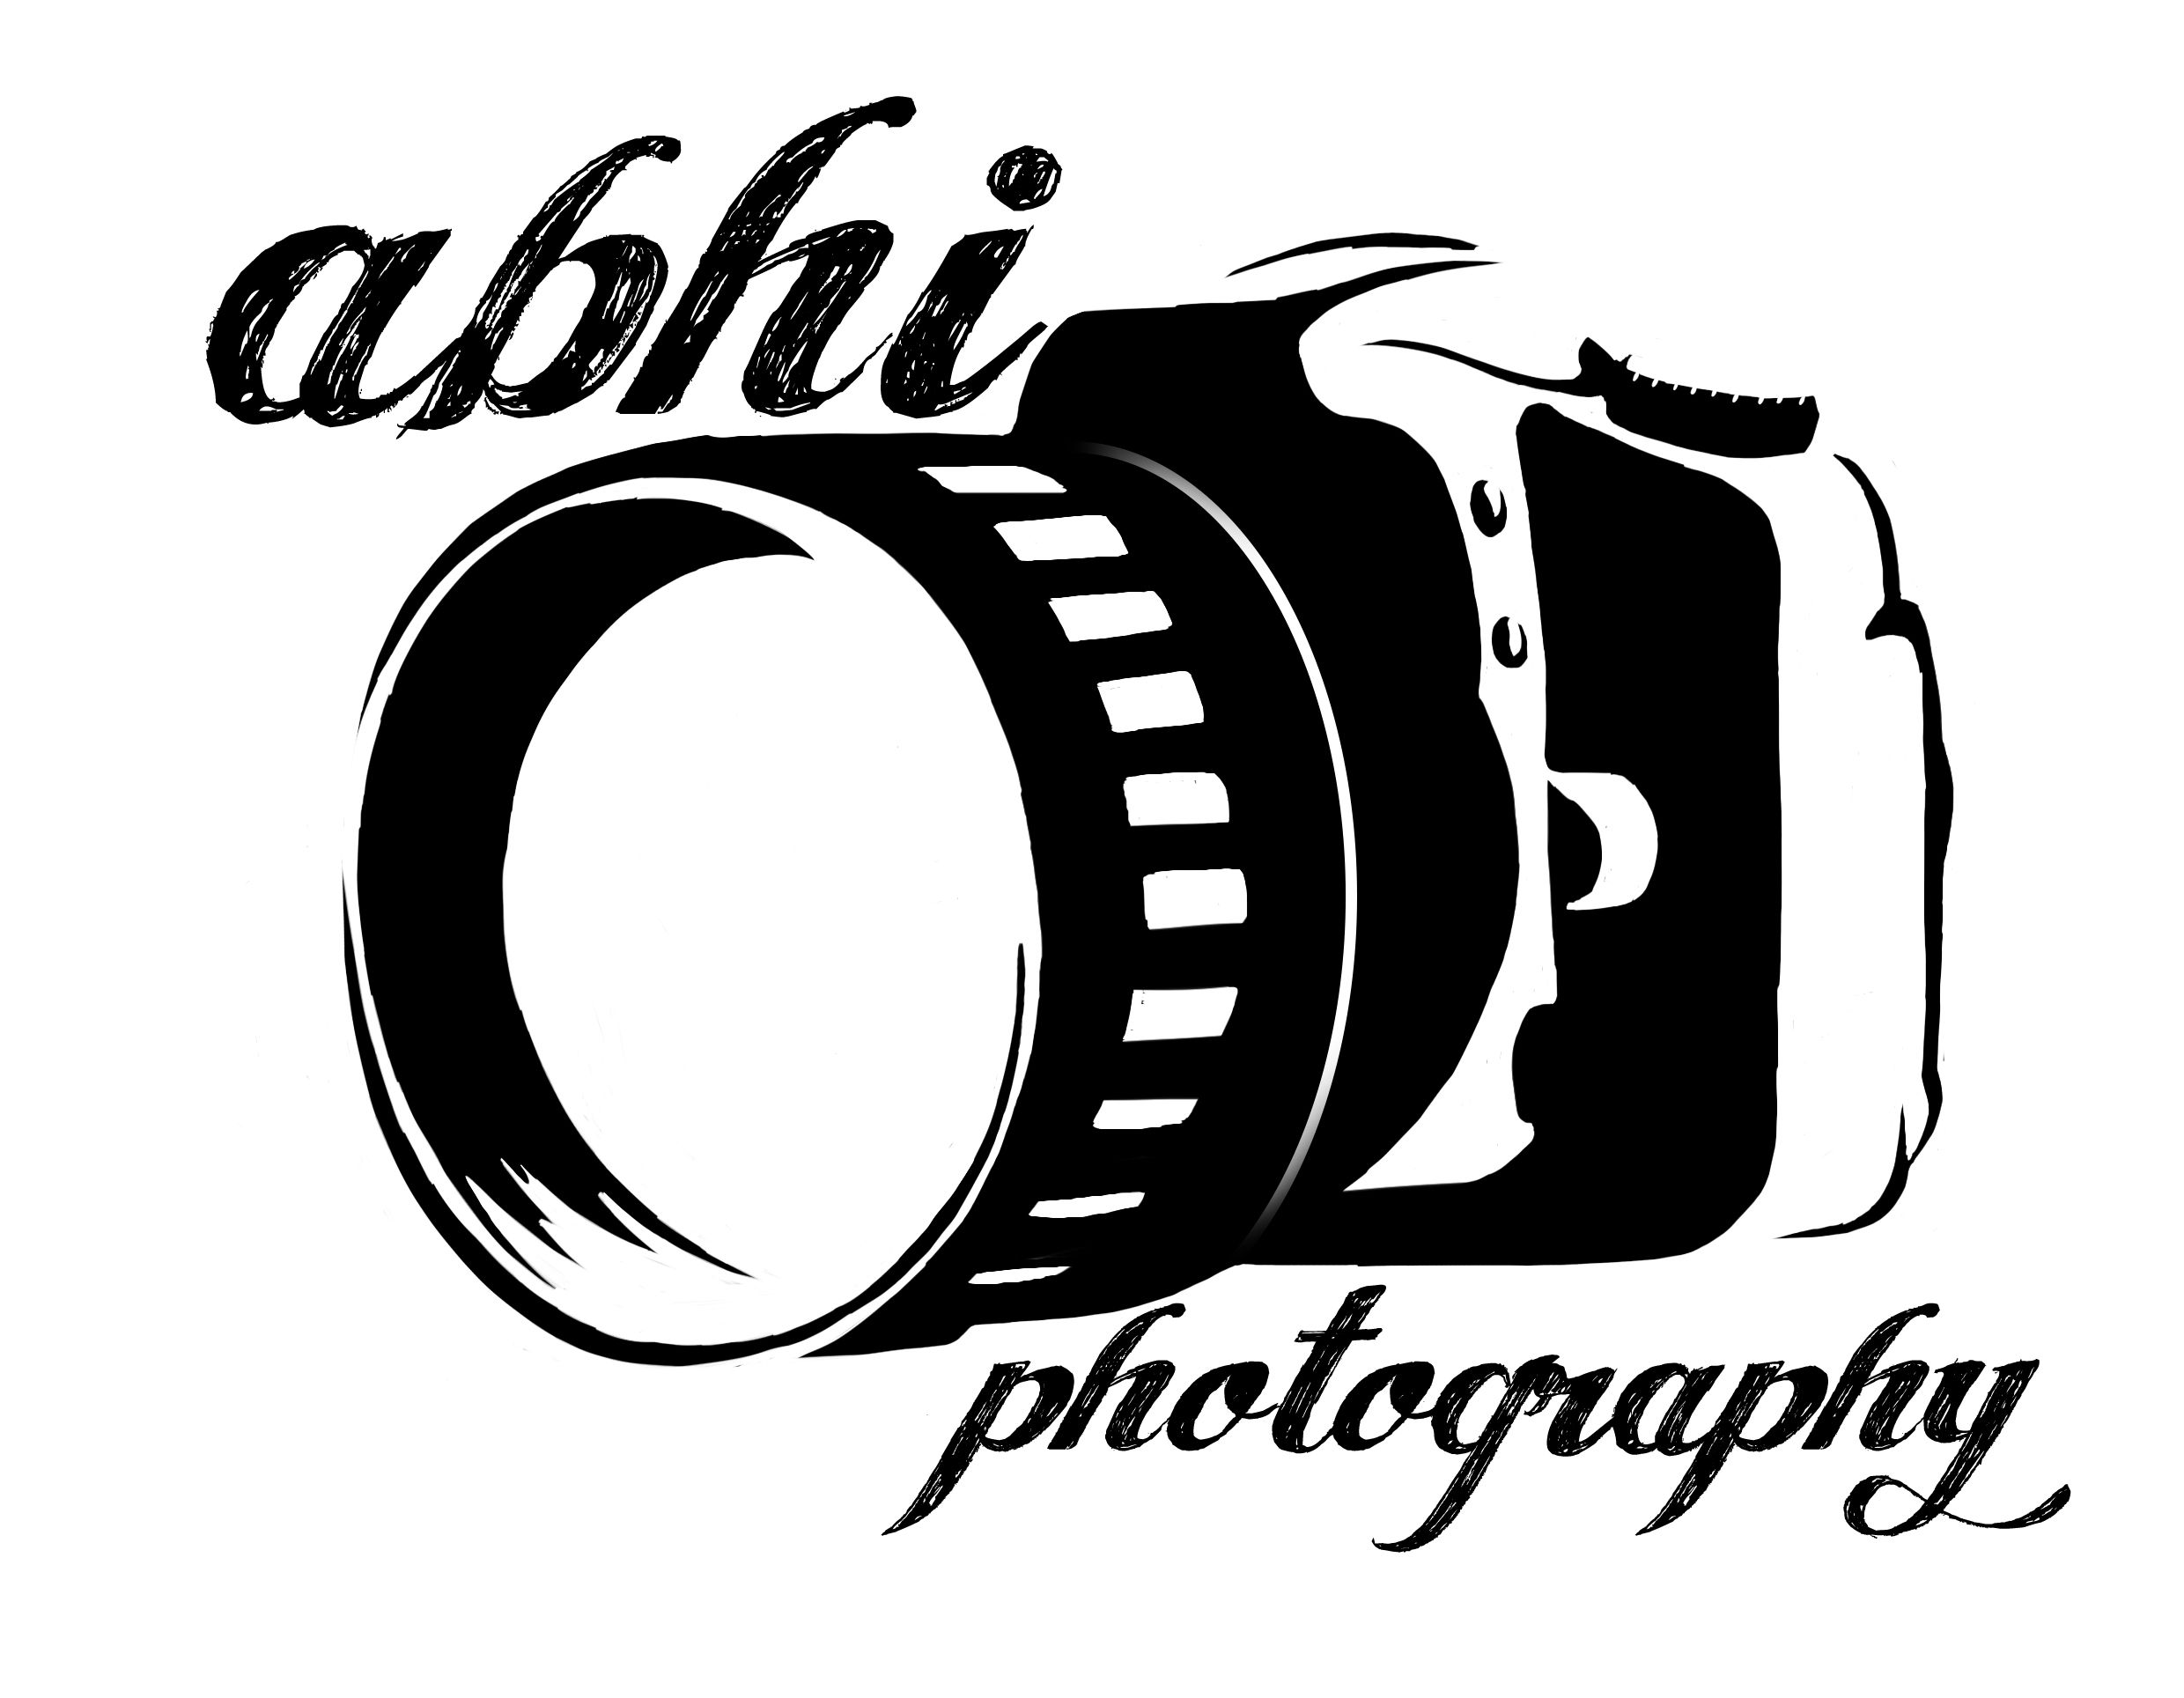 Pin by jordannerissa on photography logo.